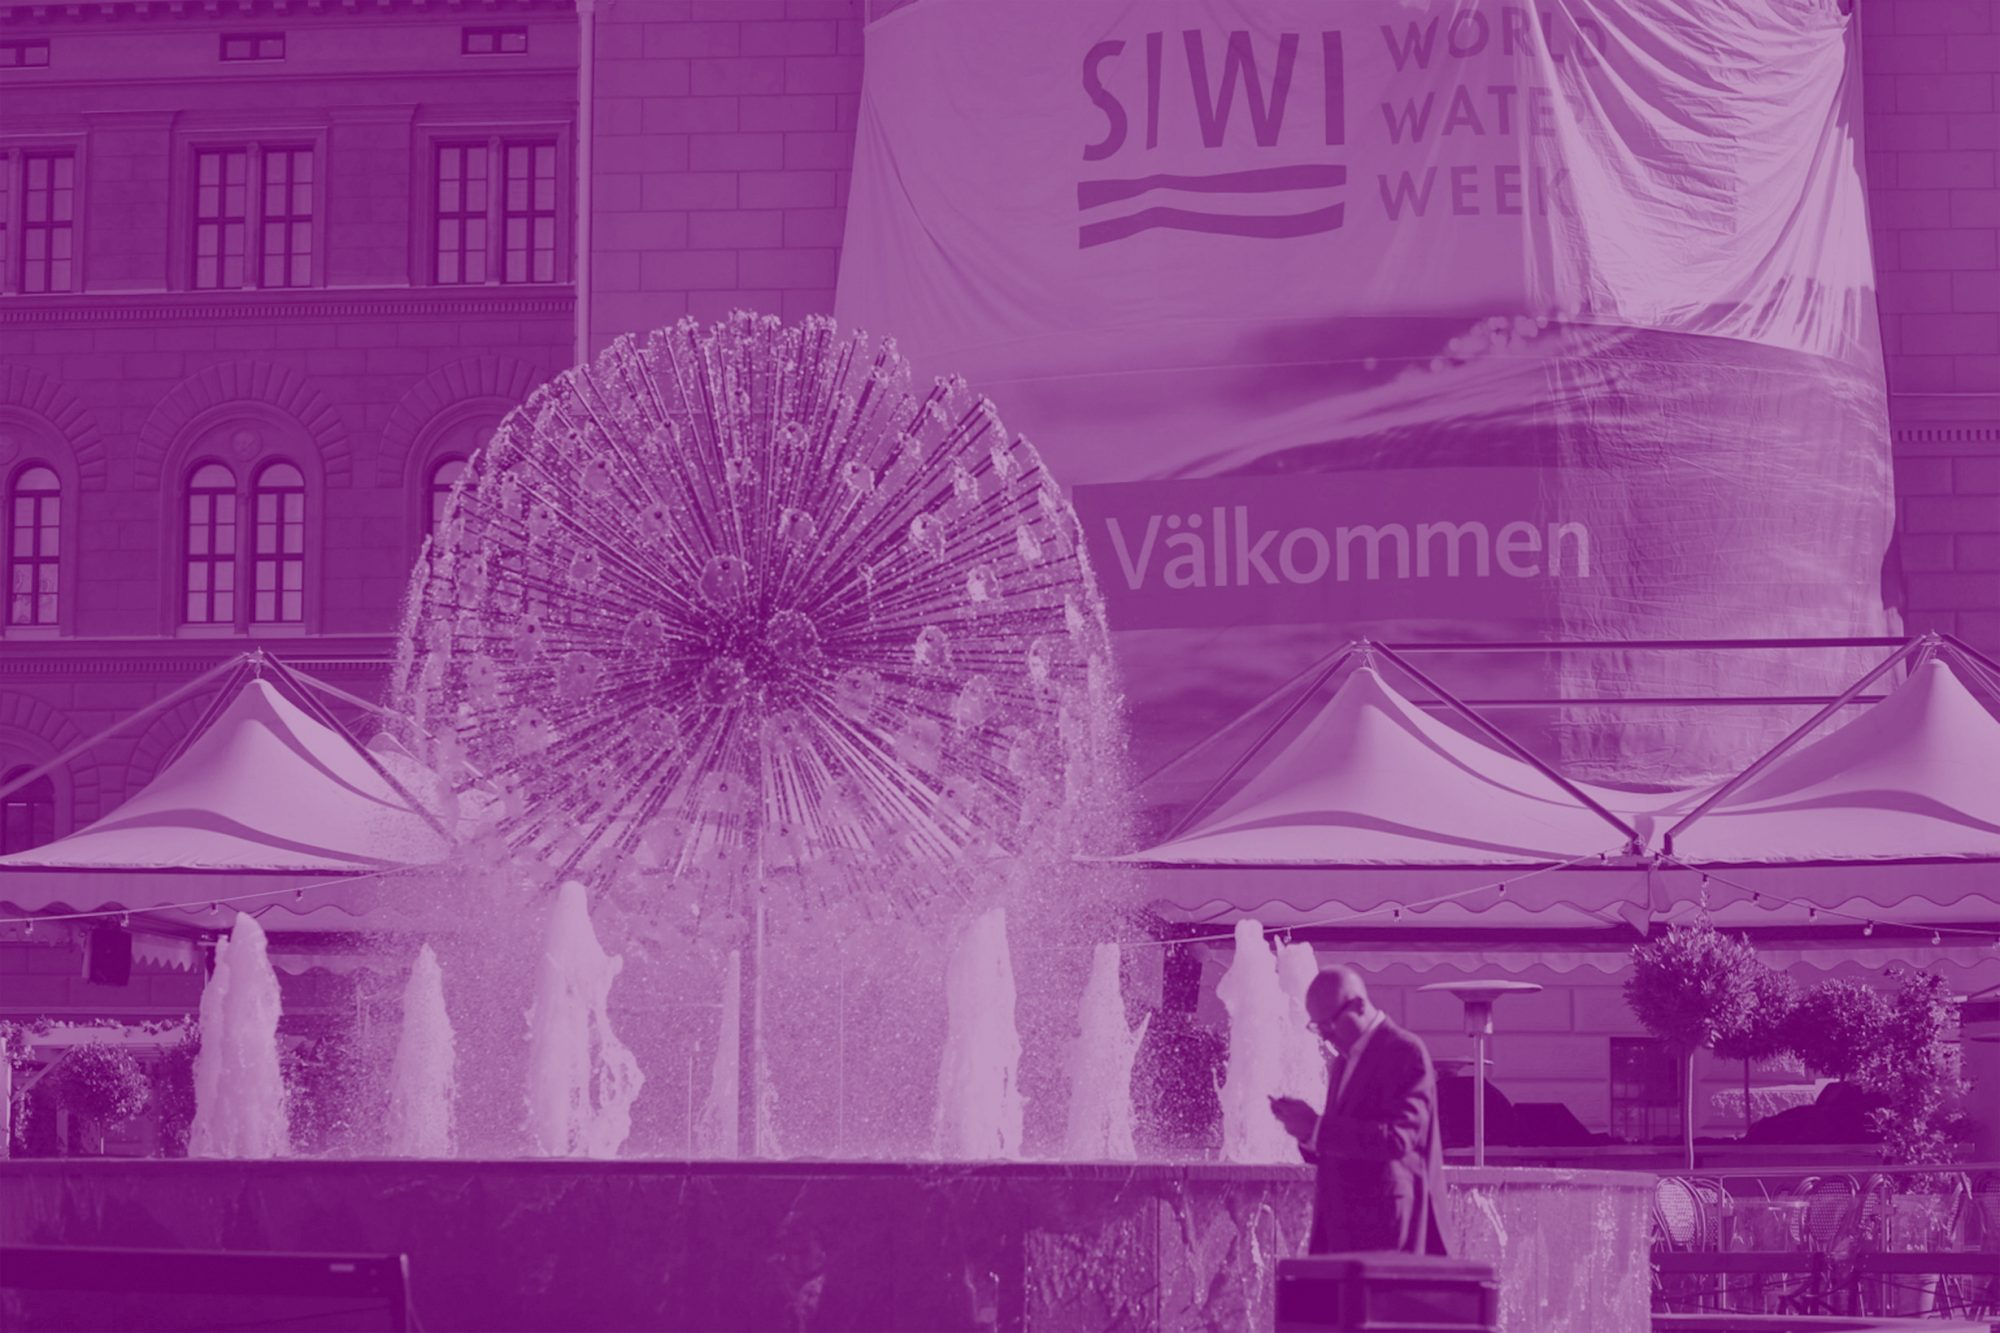 exhibition centre in Sweden with purple tint